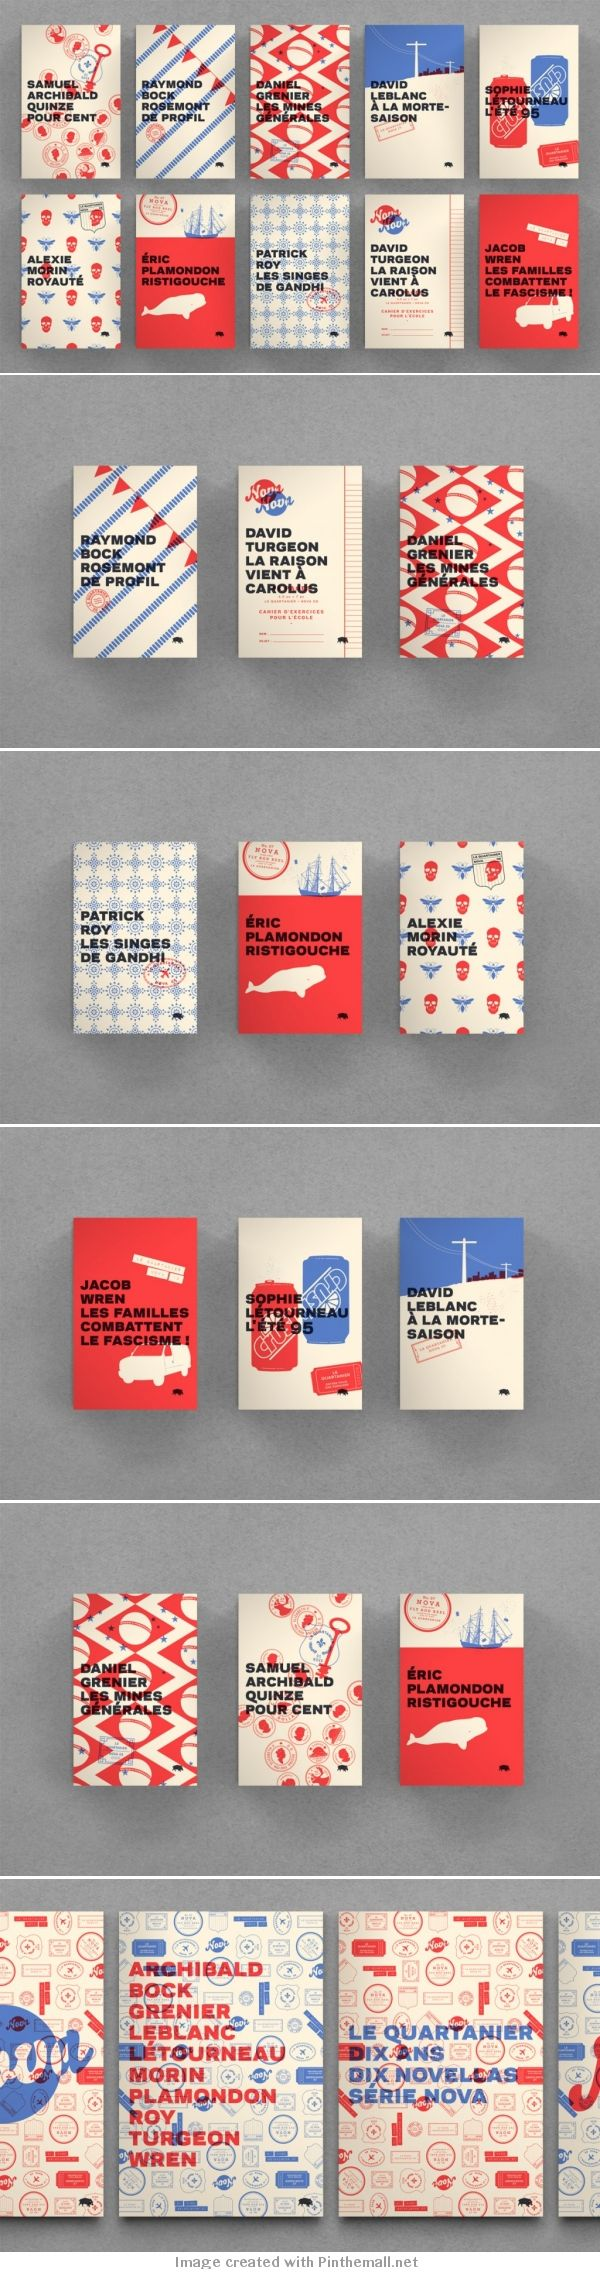 Creative Book Design Template ~ Best images about photobook ideas on pinterest baby